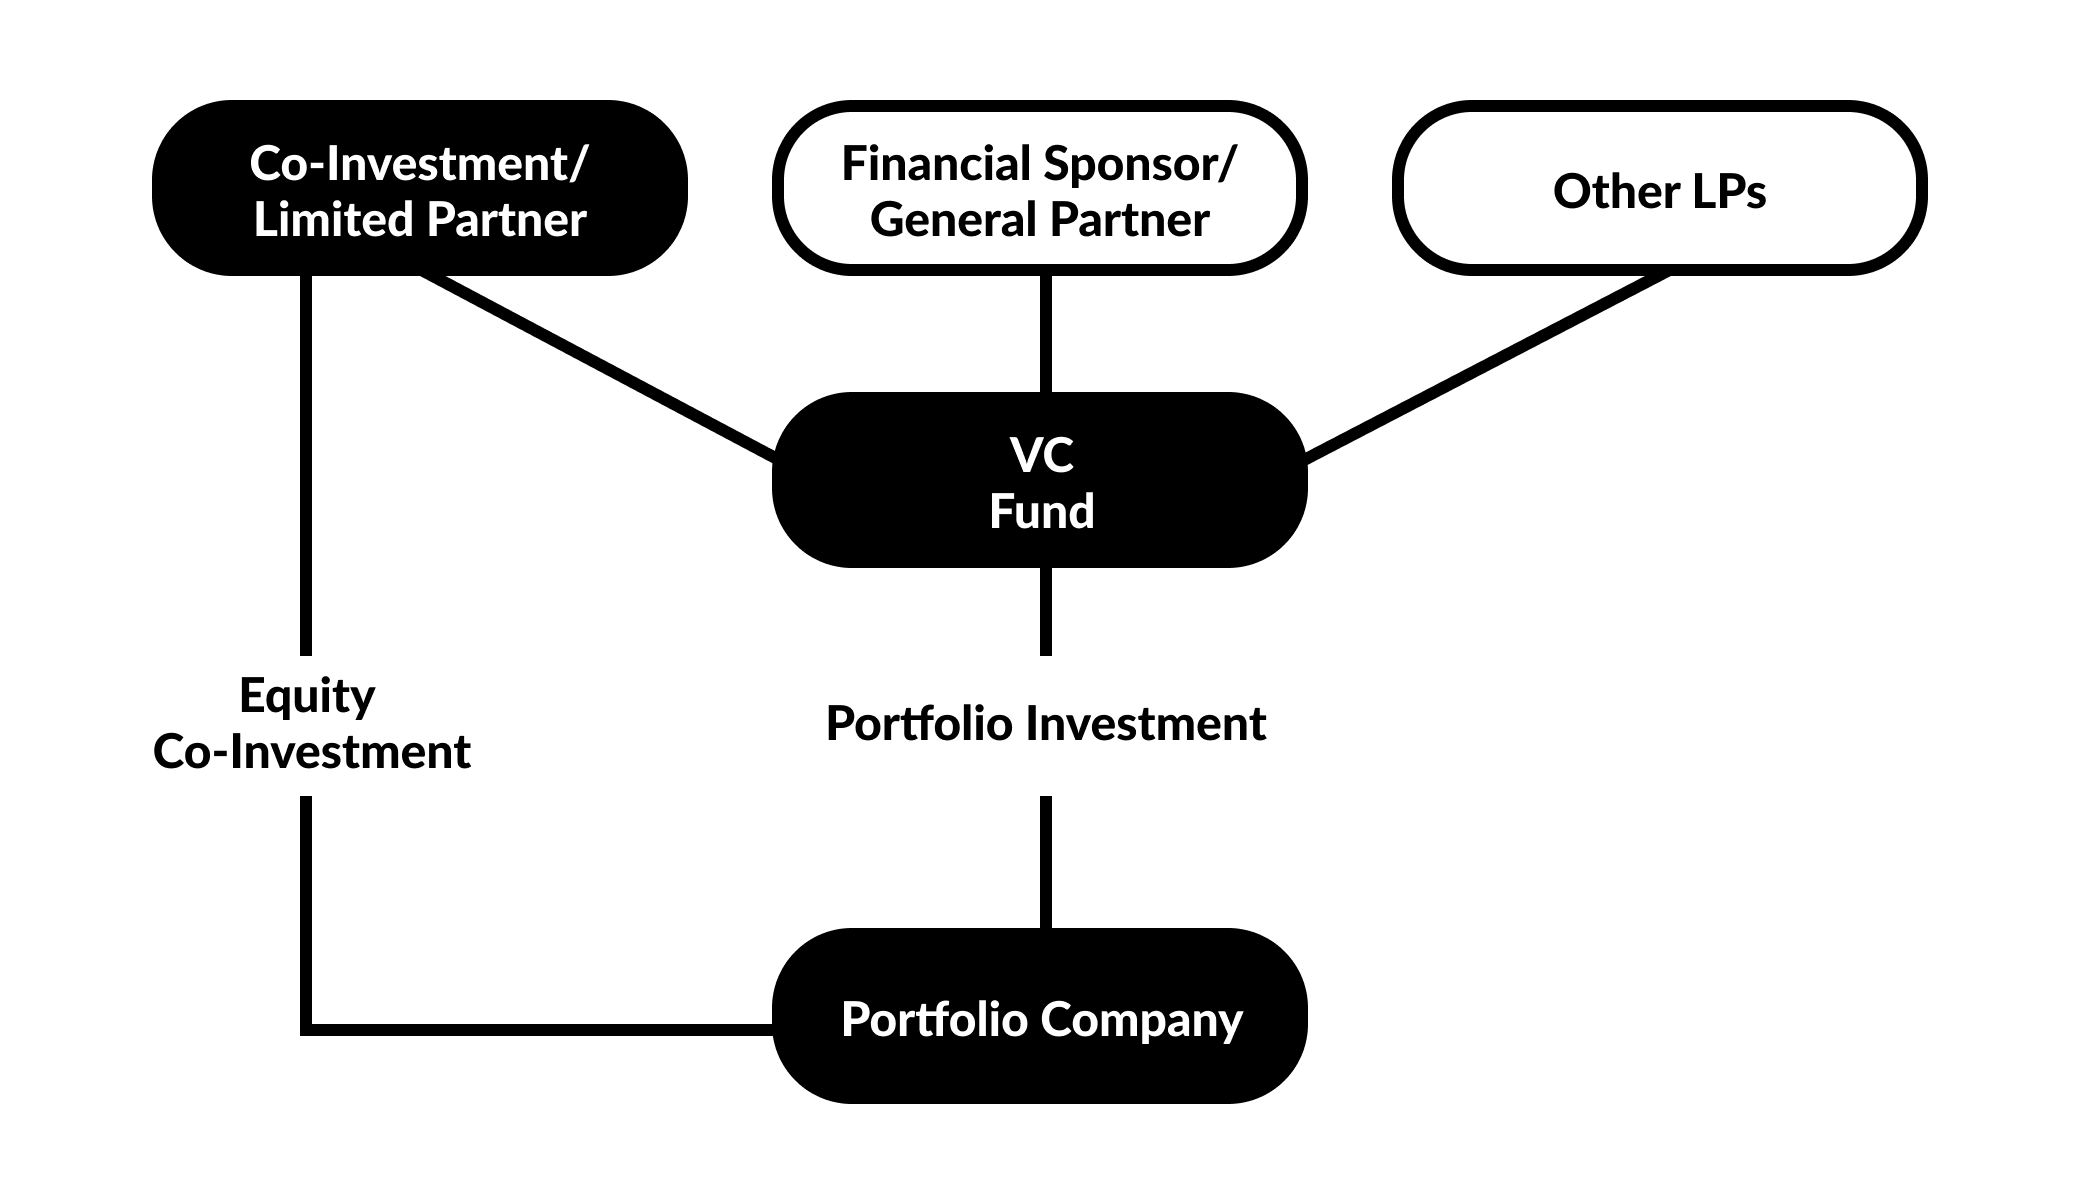 Figure 1. Equity Co-investment & Direct Fund Investment Diagram